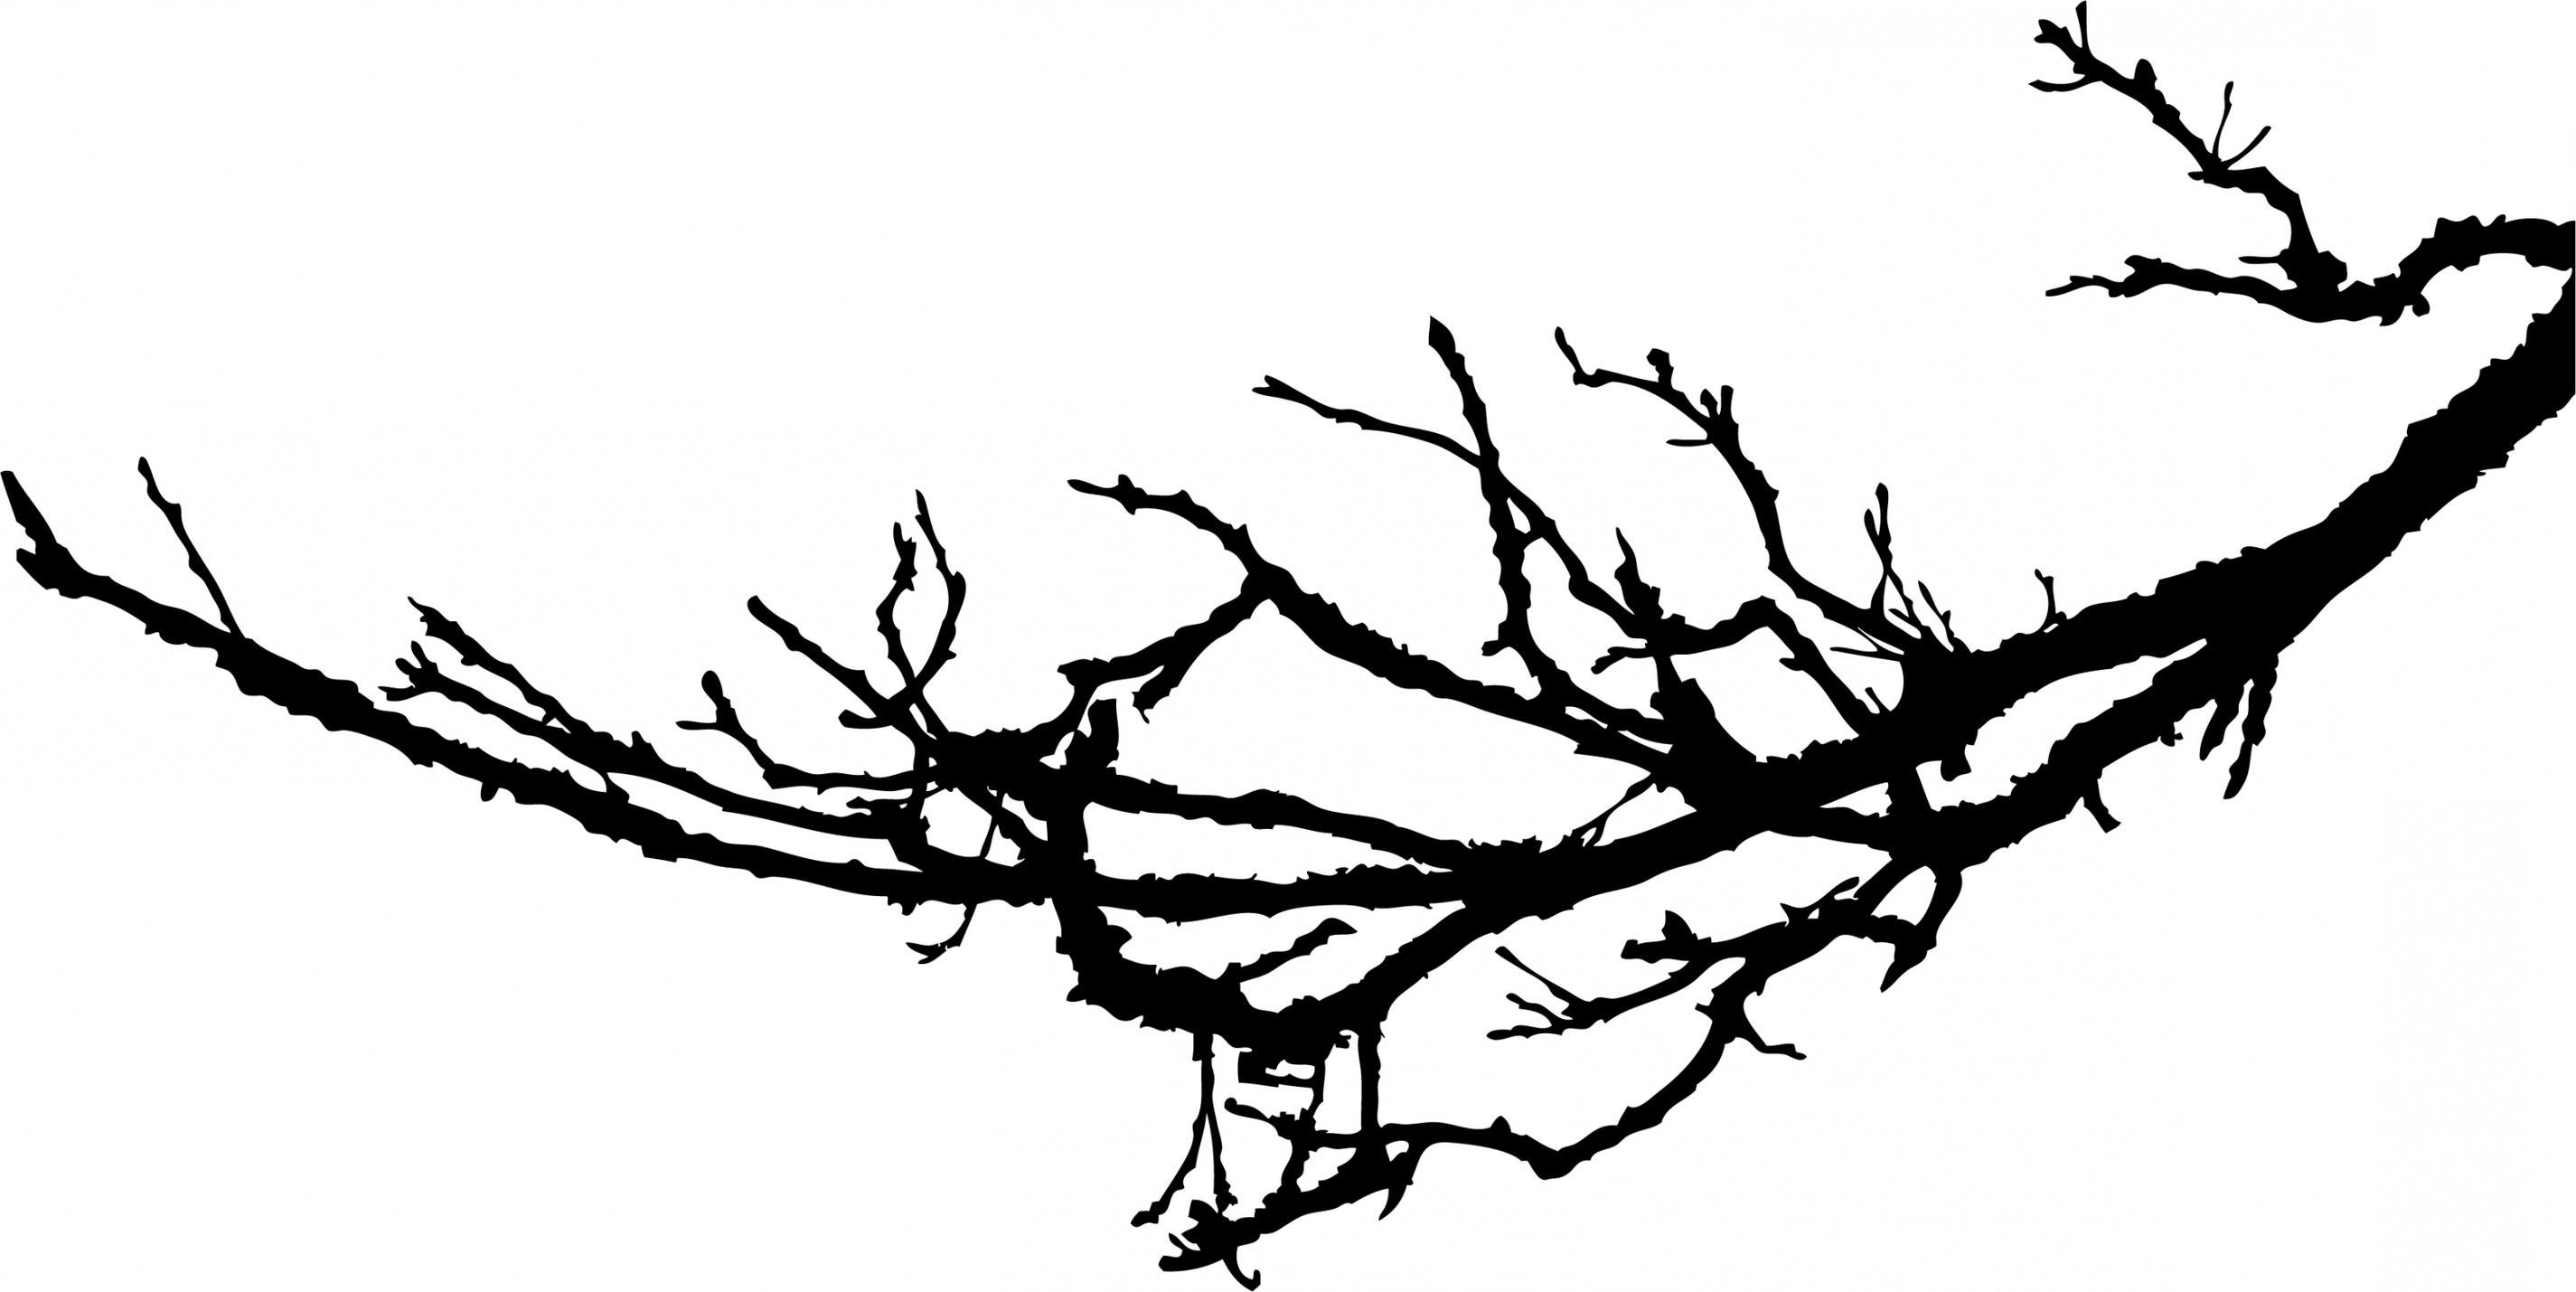 branch drawing how to draw a leafless tree easy branch drawing